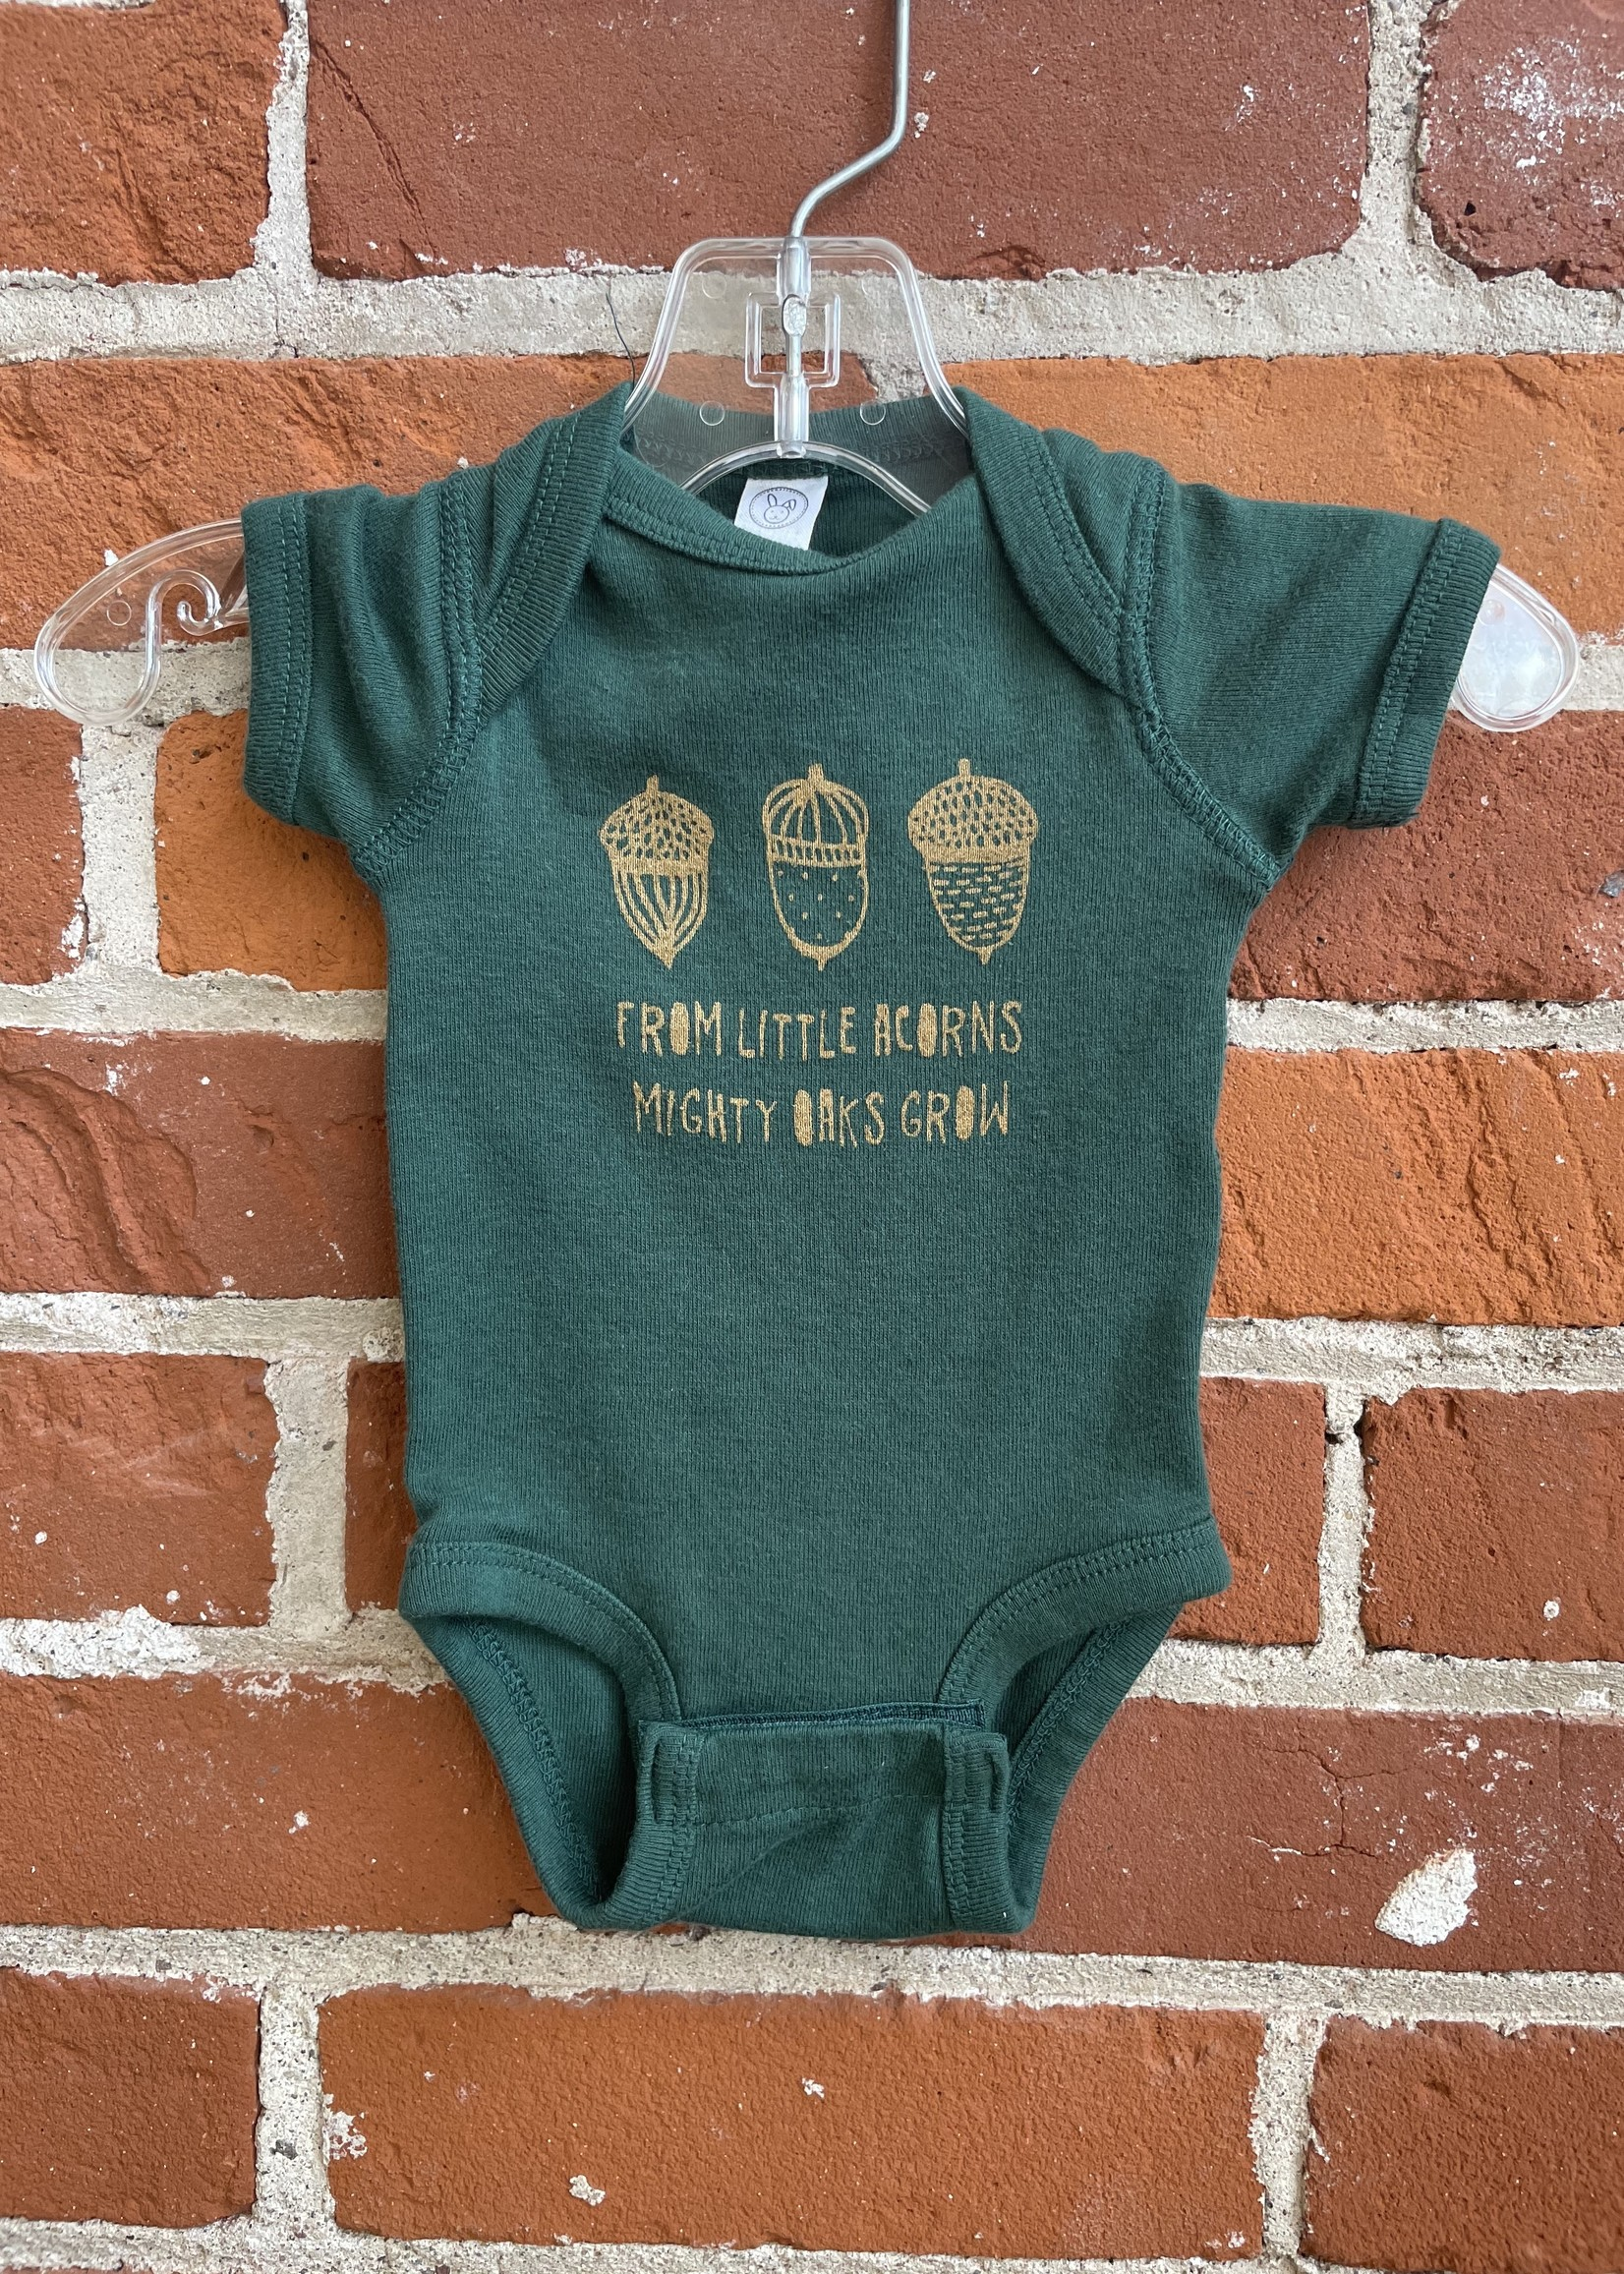 From Tiny Acorns, Might Oaks Grow Baby Body Suit